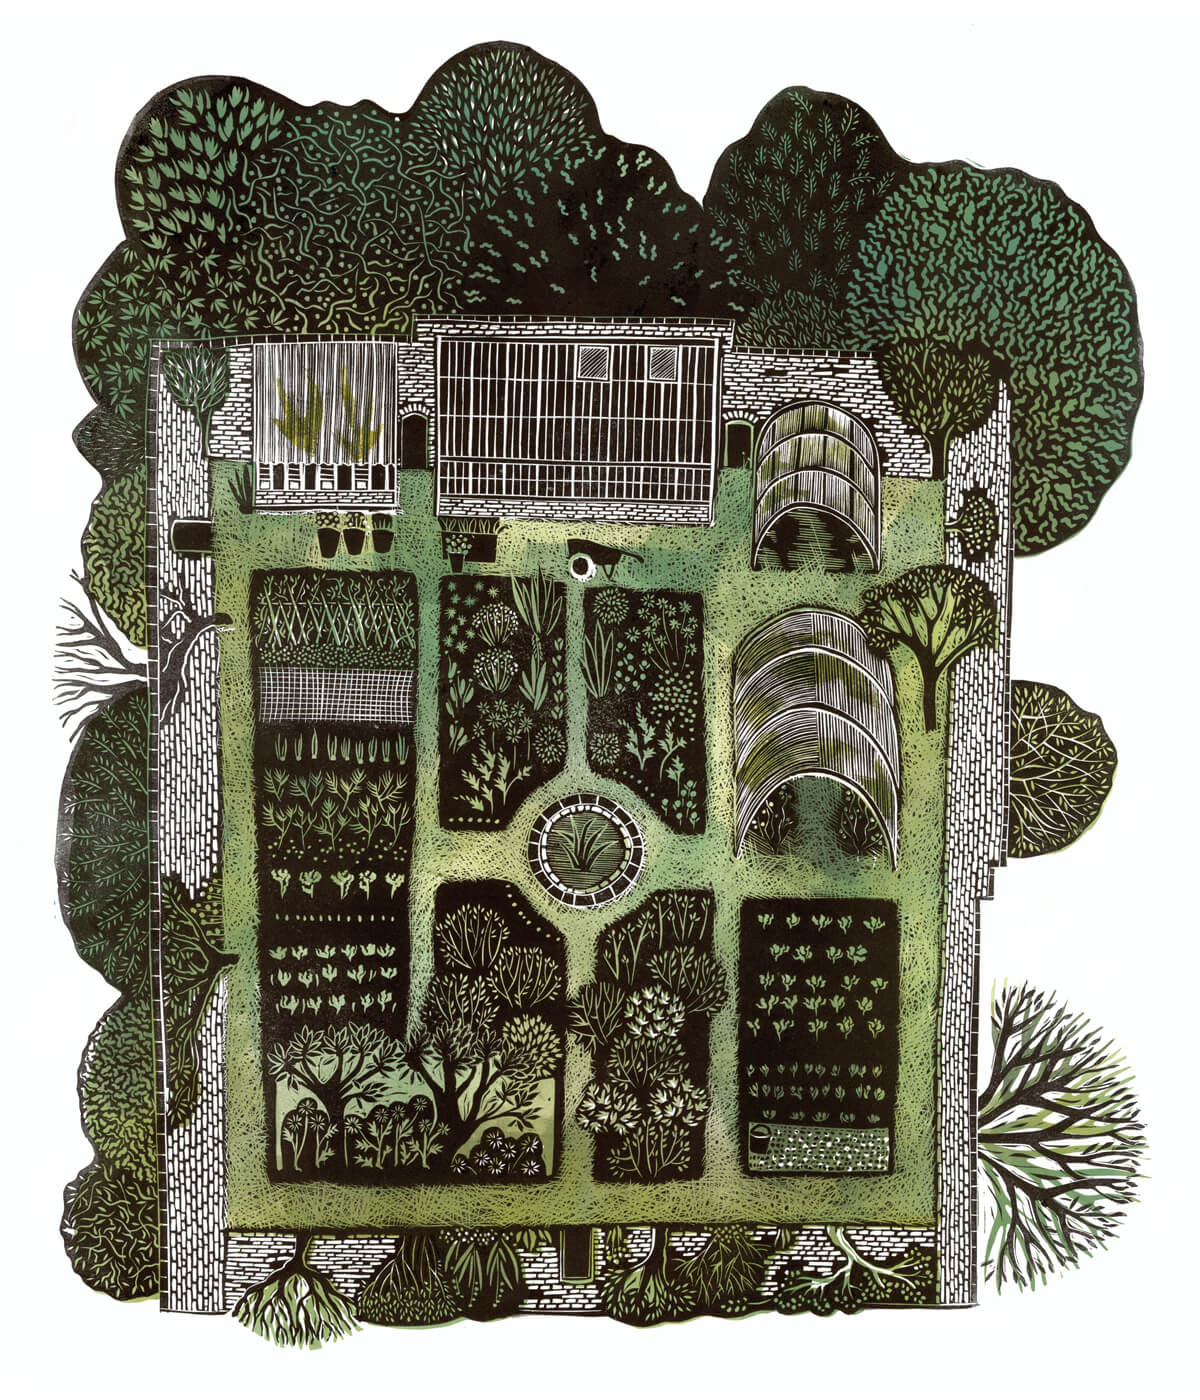 Kitchen Gardens, Launde, a linocut print by Sarah Kirby